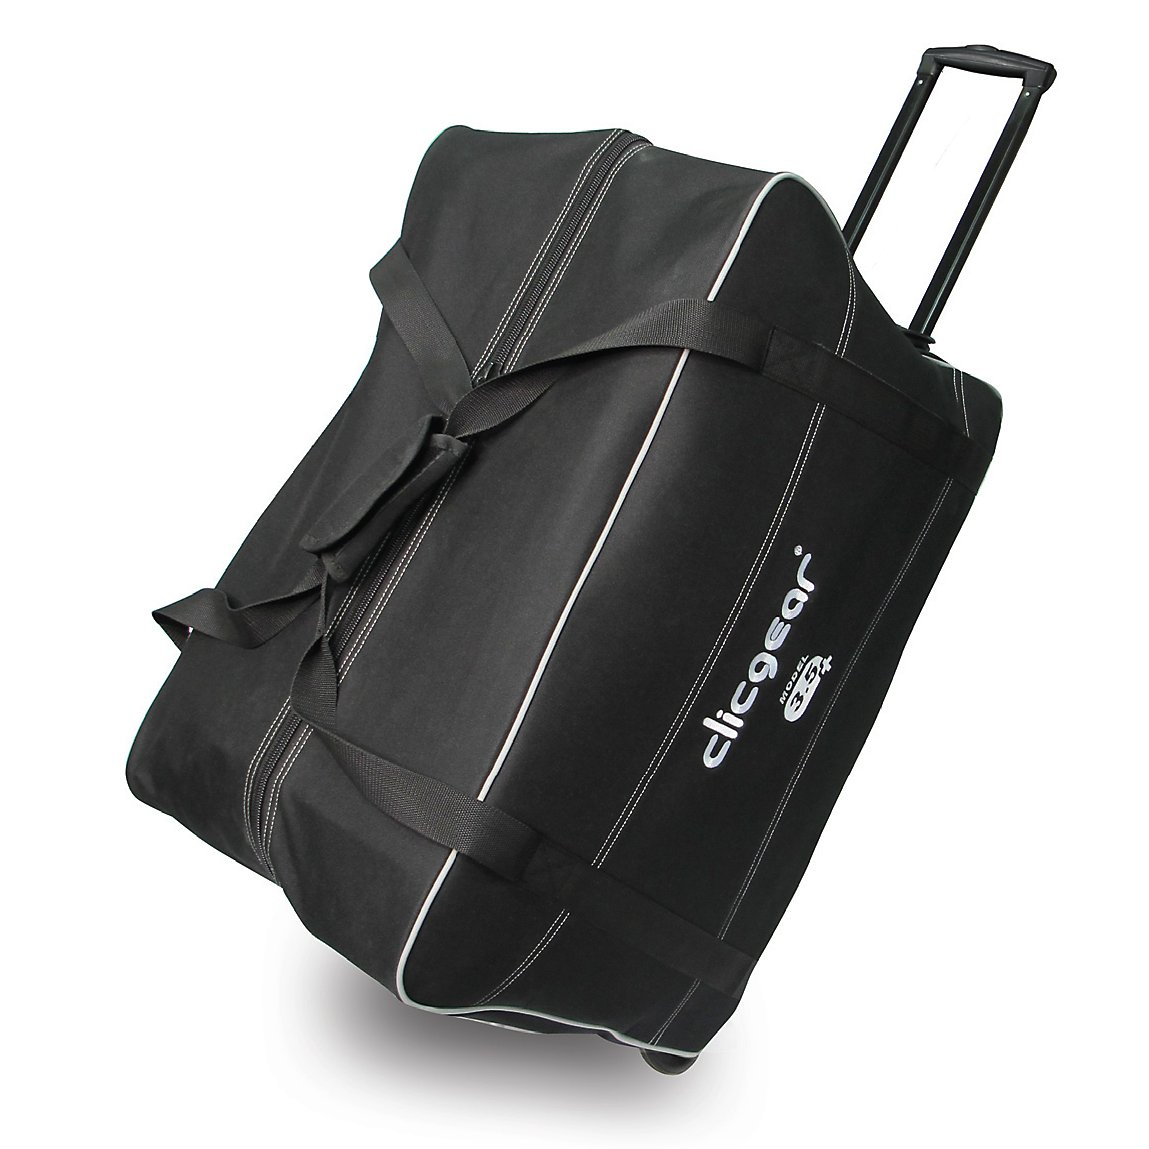 Clicgear Wheeled Travel Cover Bag for Clicgear/Rovic Golf Push Carts by Clicgear